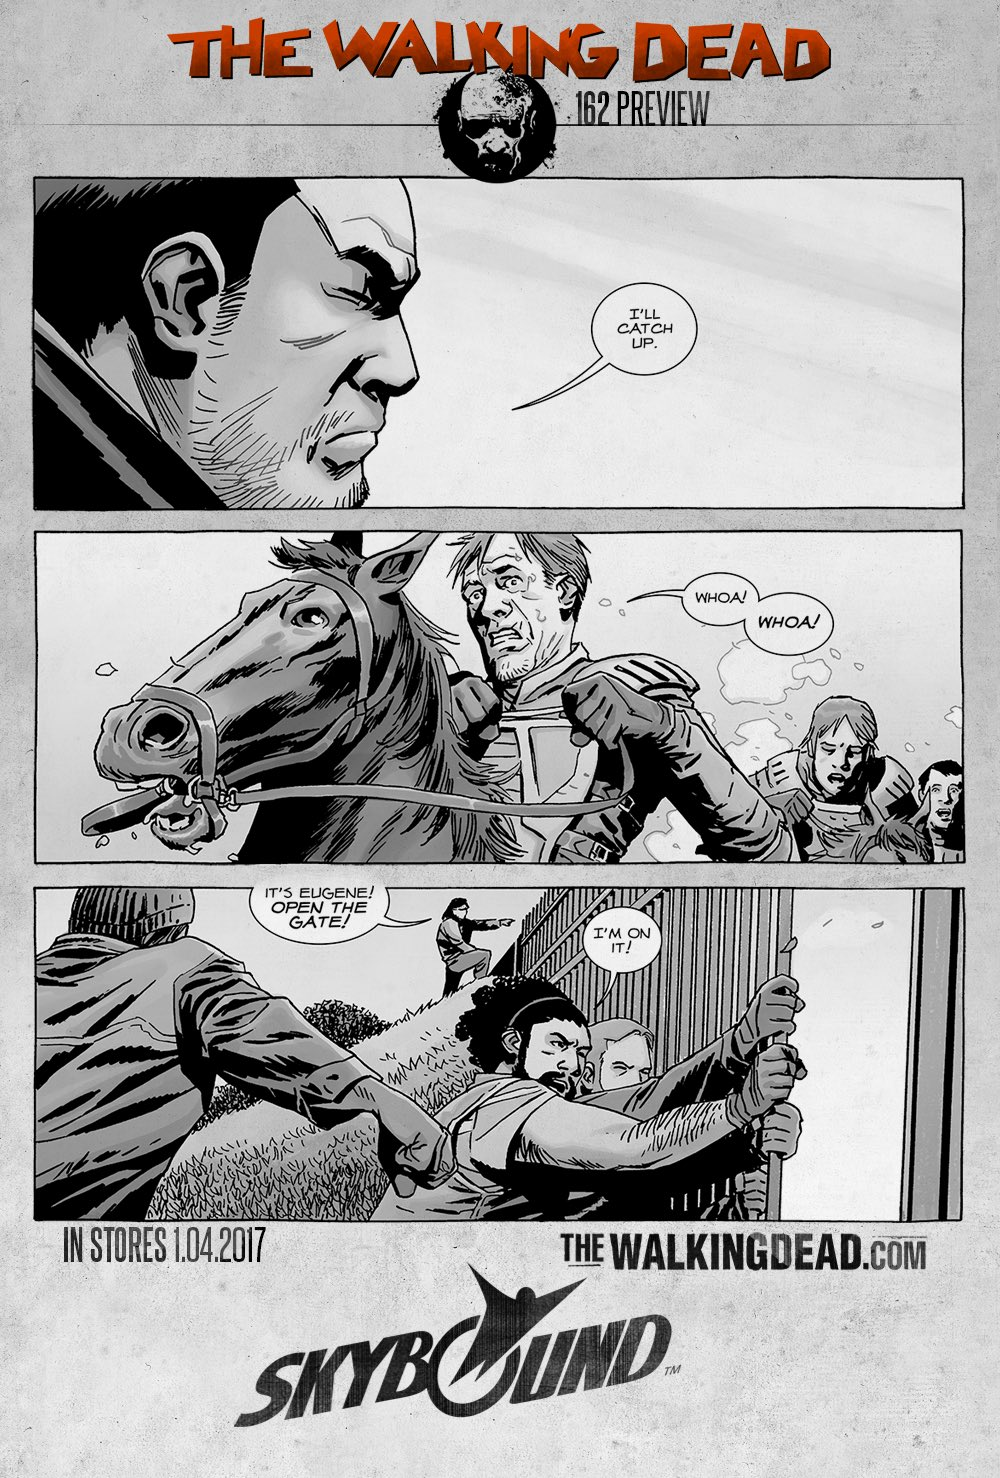 The Whisperer War Comes To An End In This First Look At Wednesday's The Walking Dead #162